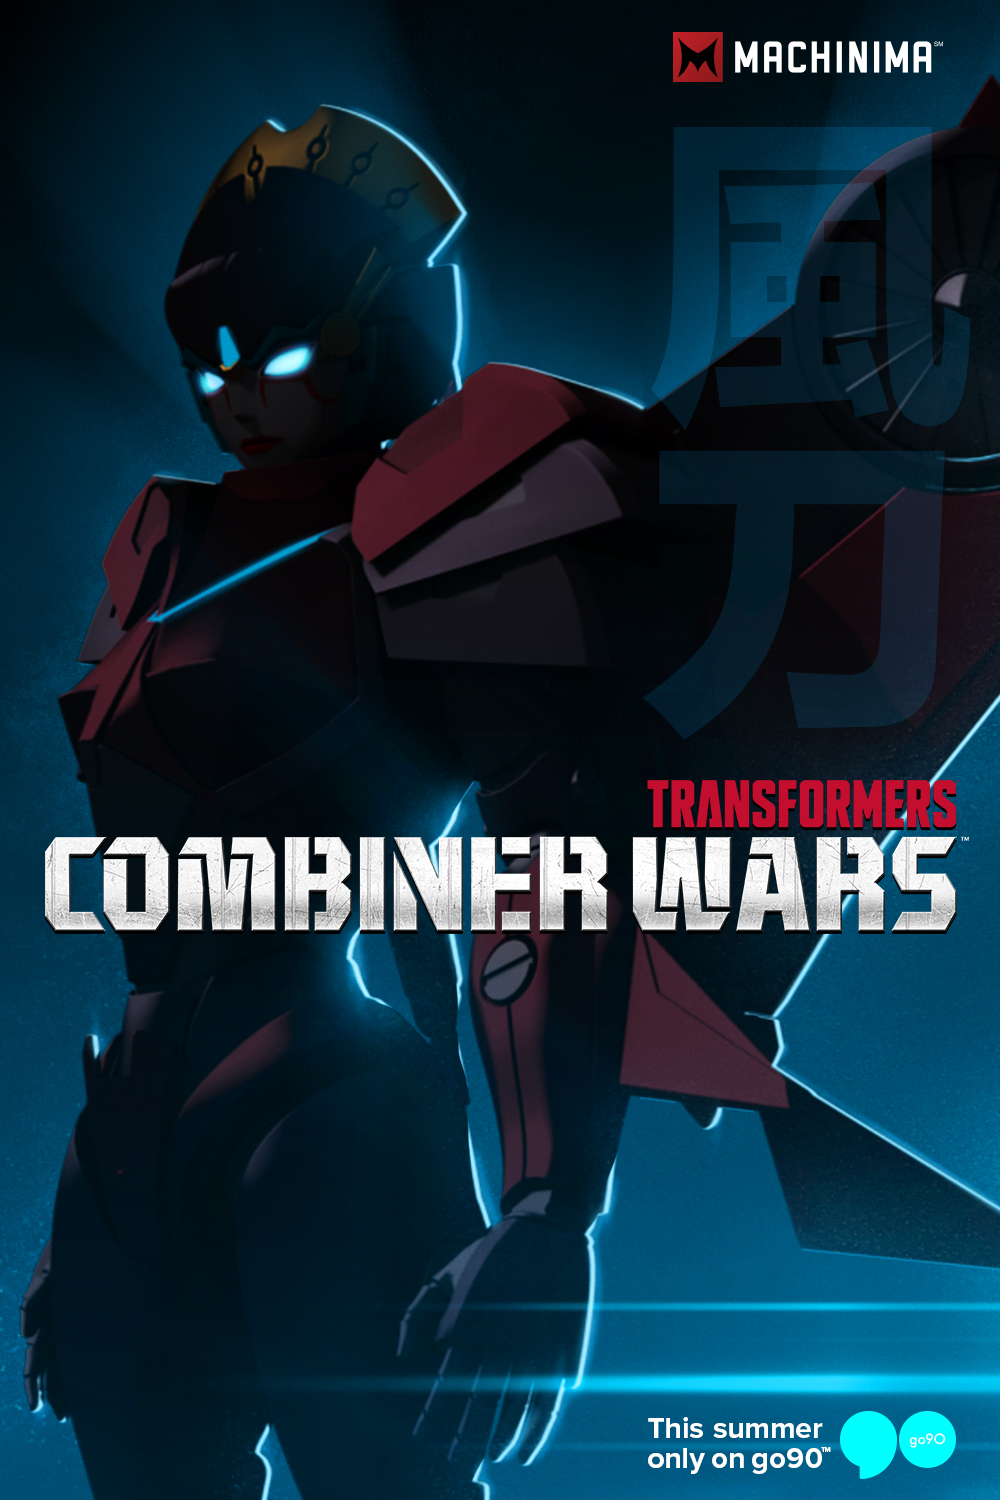 optimus-prime-prelude-episode-for-transformers-combiner-wars2